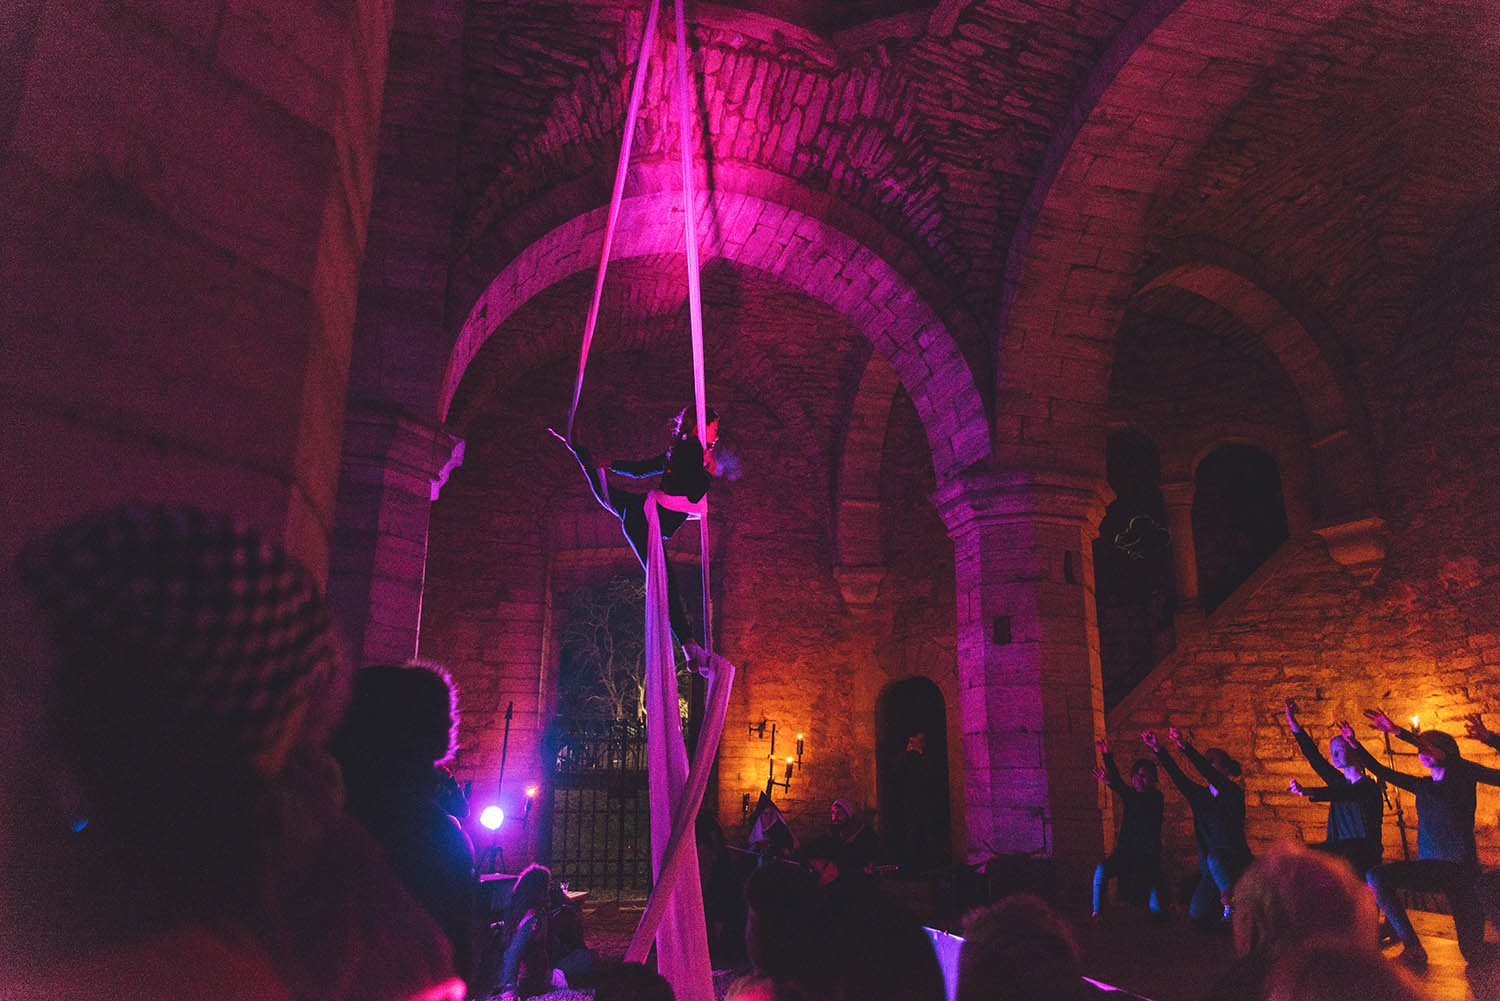 PAX Show / Medieval Christmas in Visby